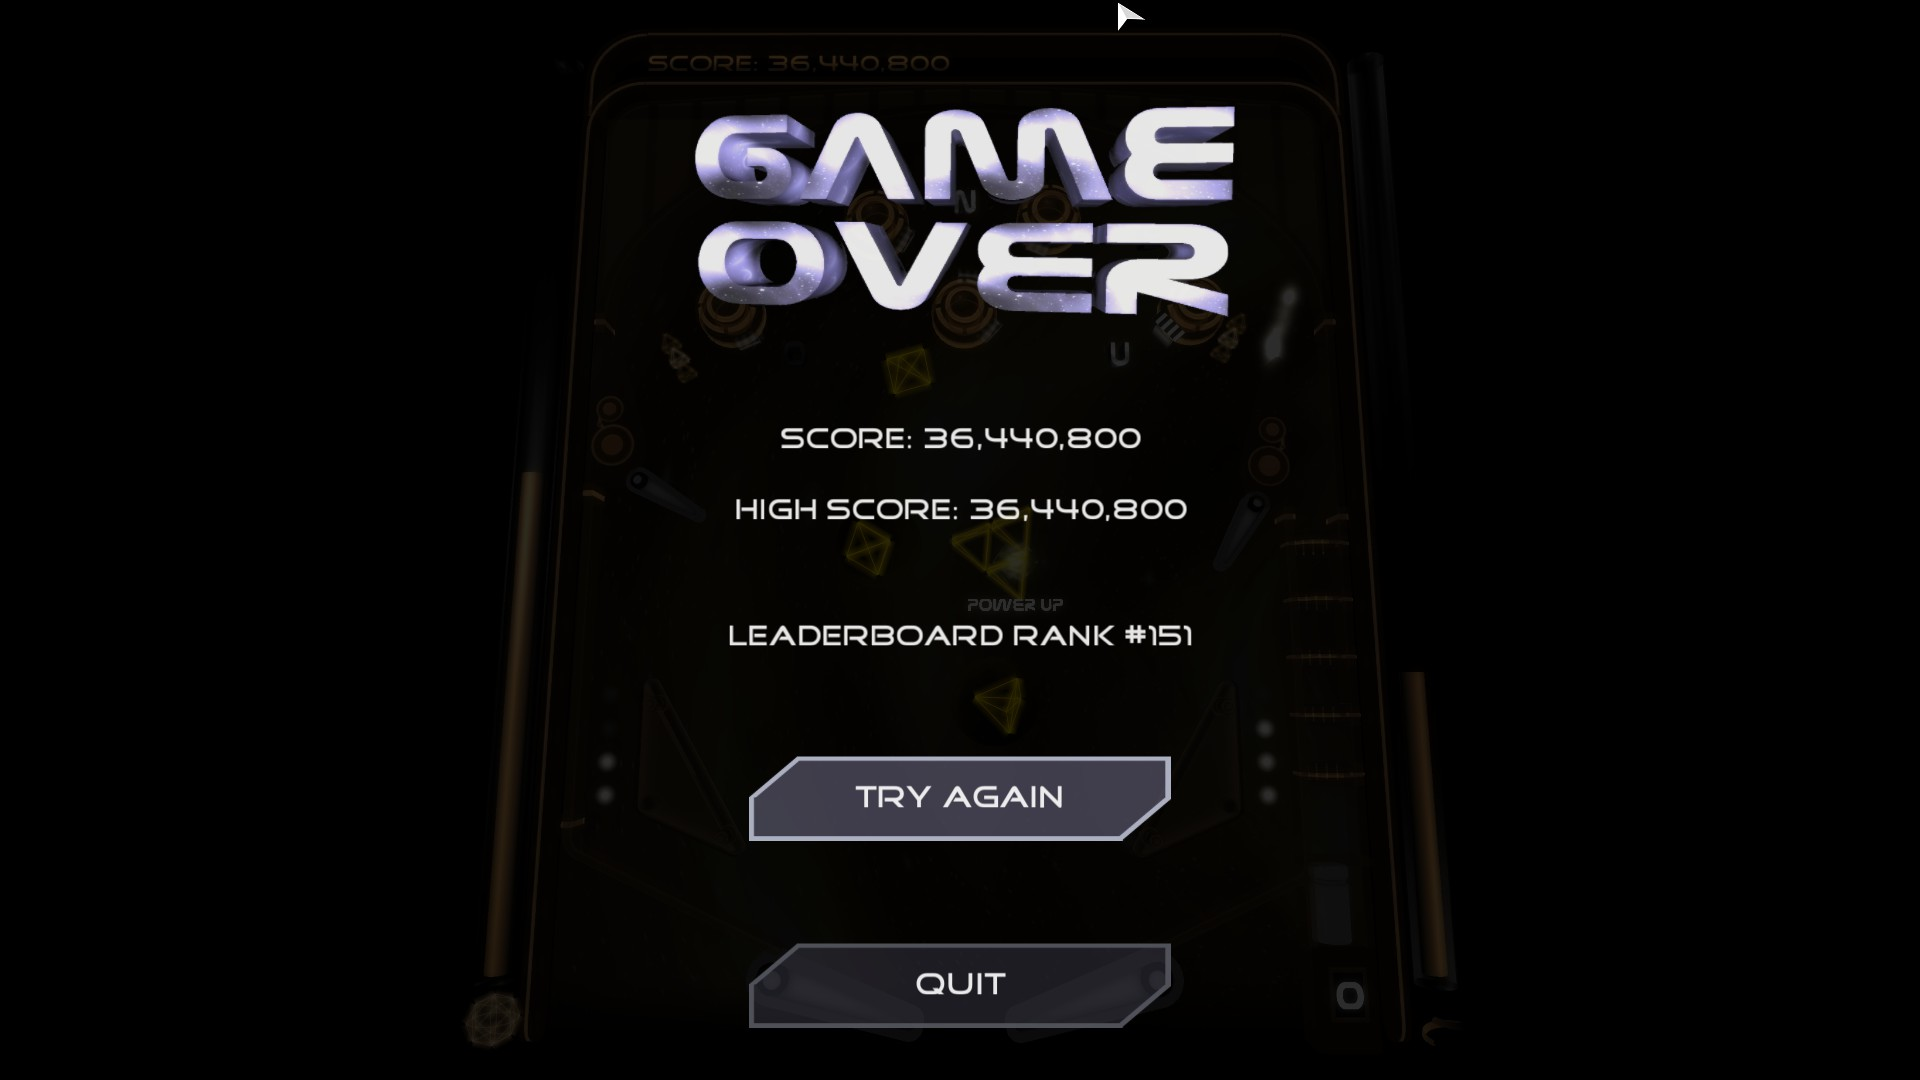 Mantalow: Hyperspace Pinball (PC) 36,440,800 points on 2016-01-31 04:23:35